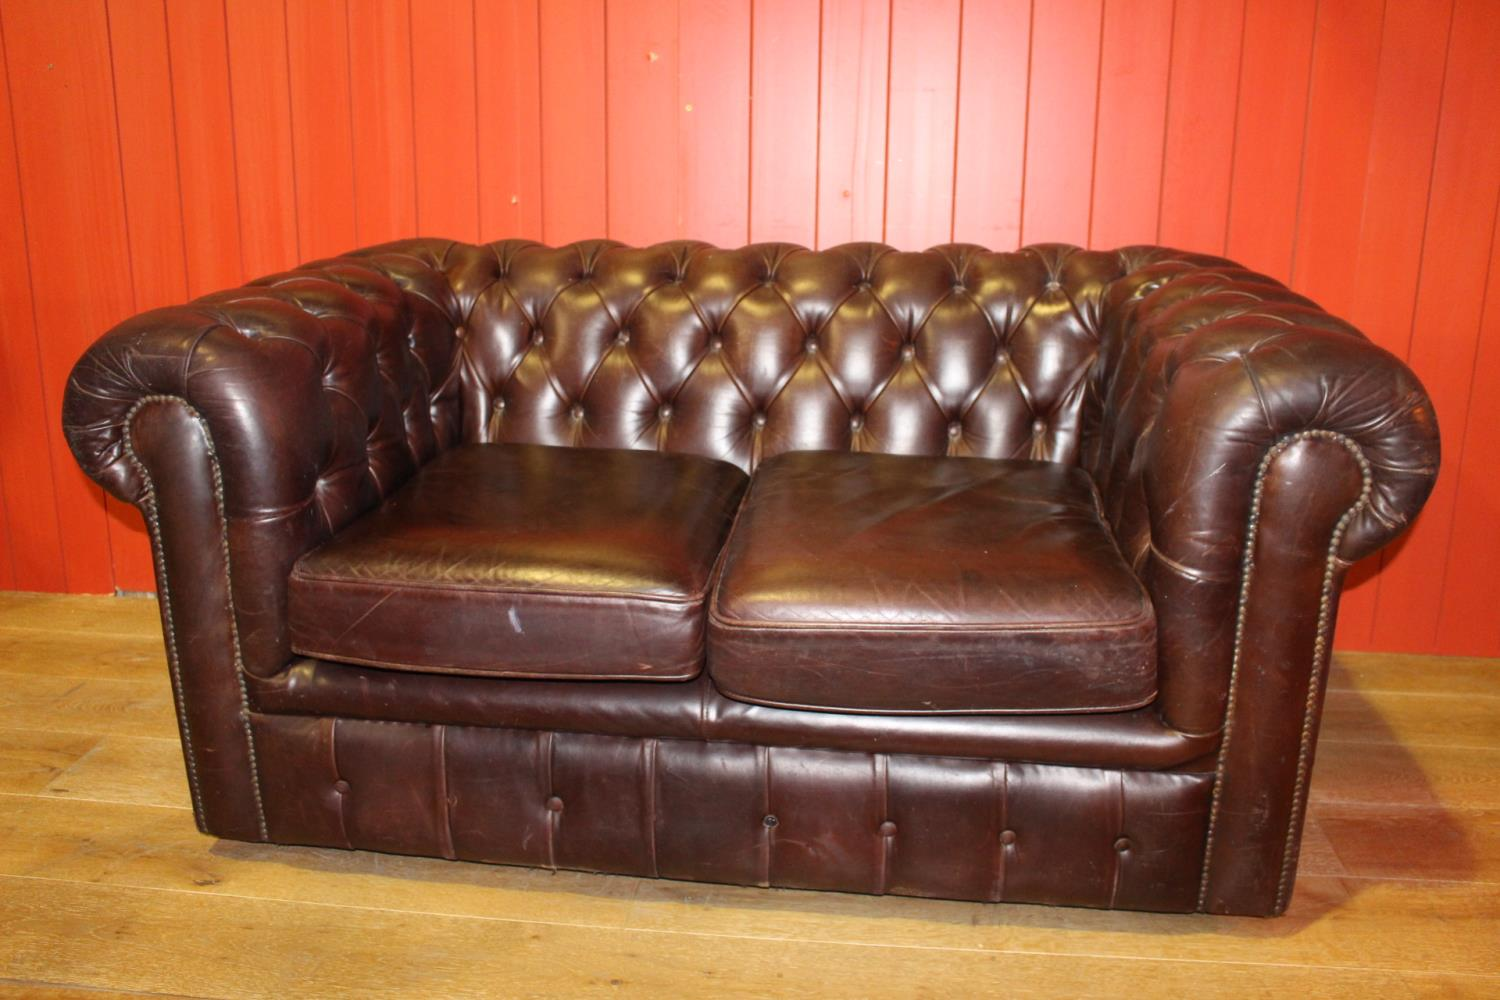 Two seater Chesterfield sofa.